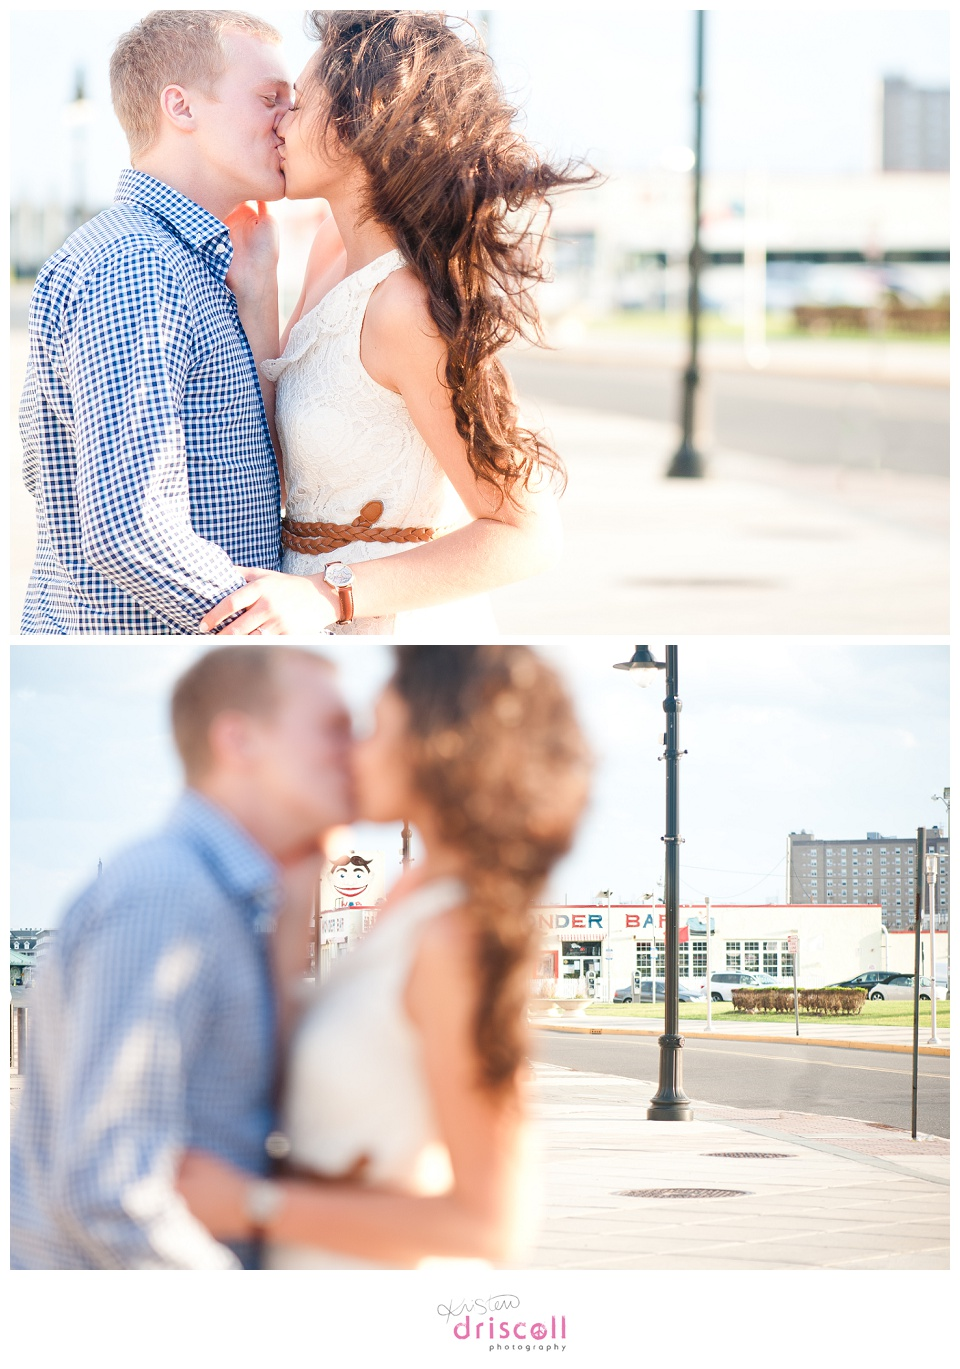 asbury-park-engagement-photos-kristen-driscoll-20130611-2833